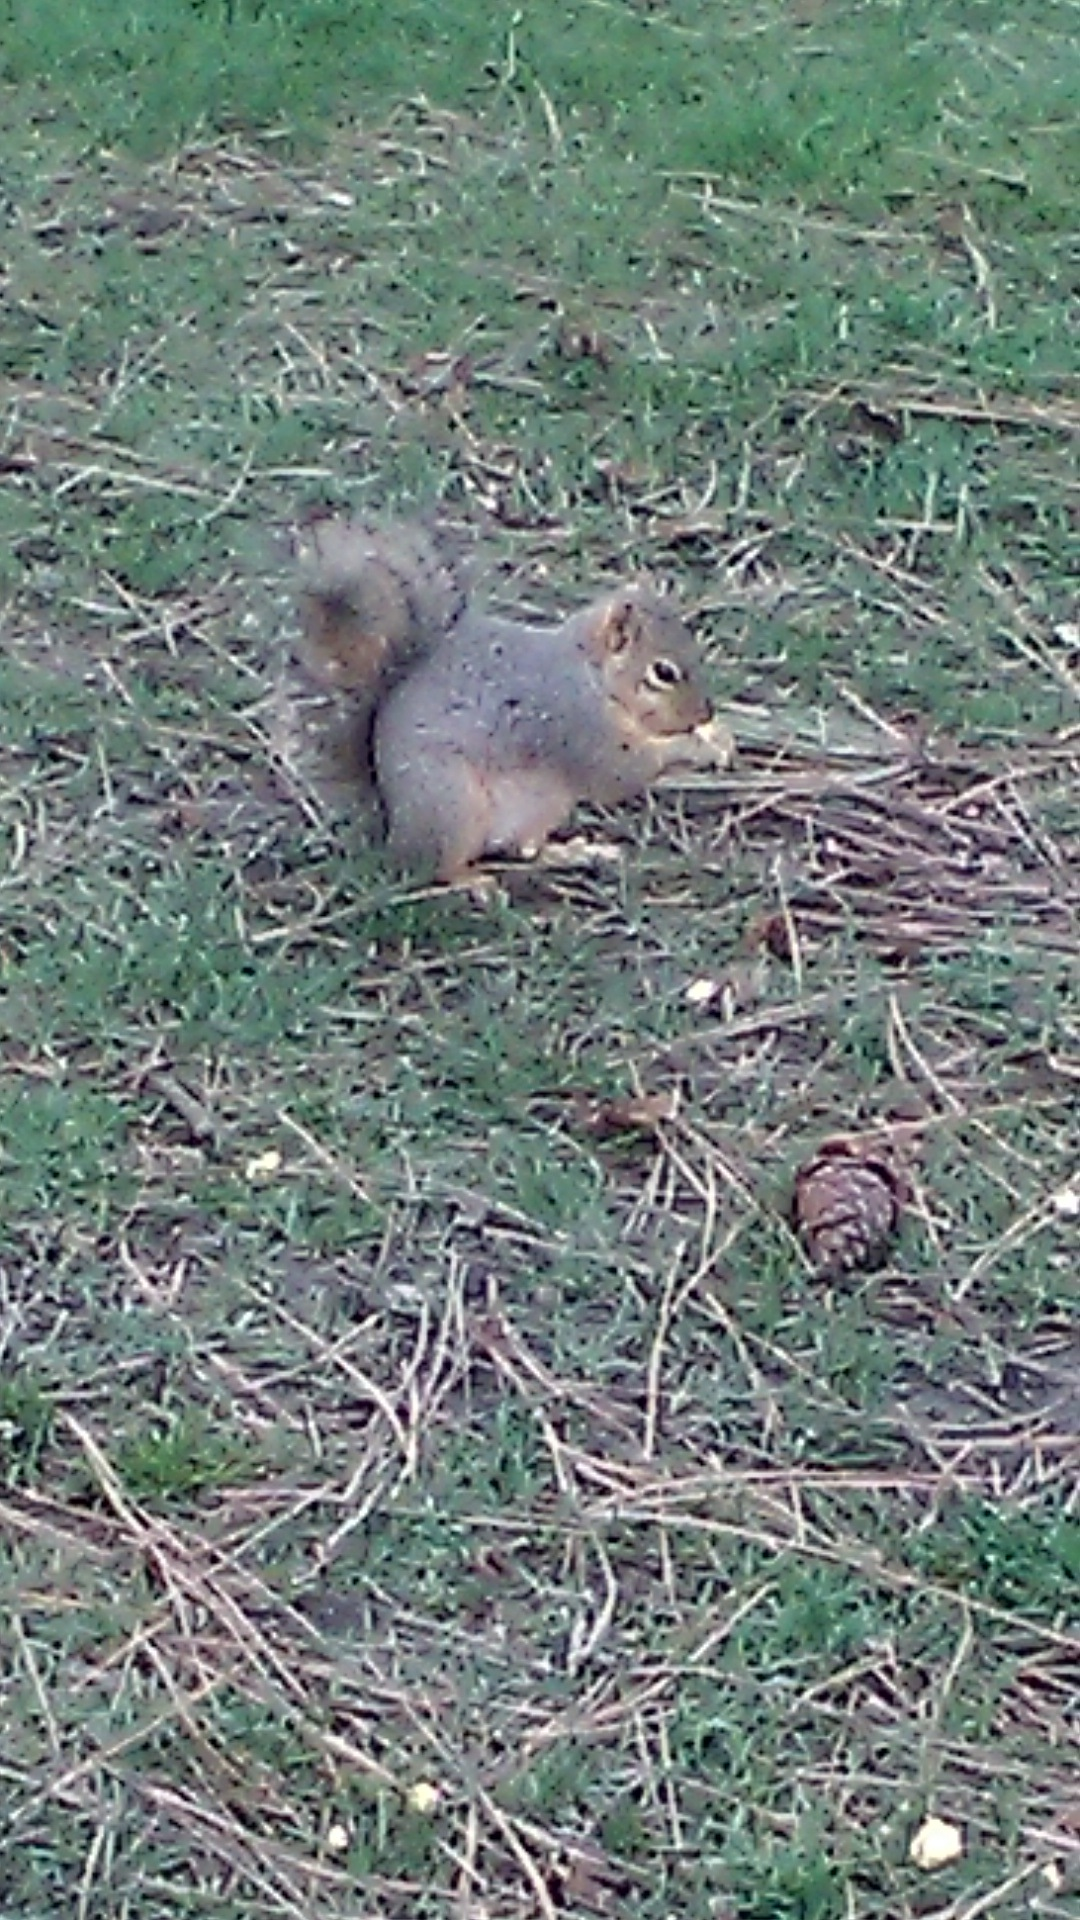 Looking for pine nuts by Keri E. Carter